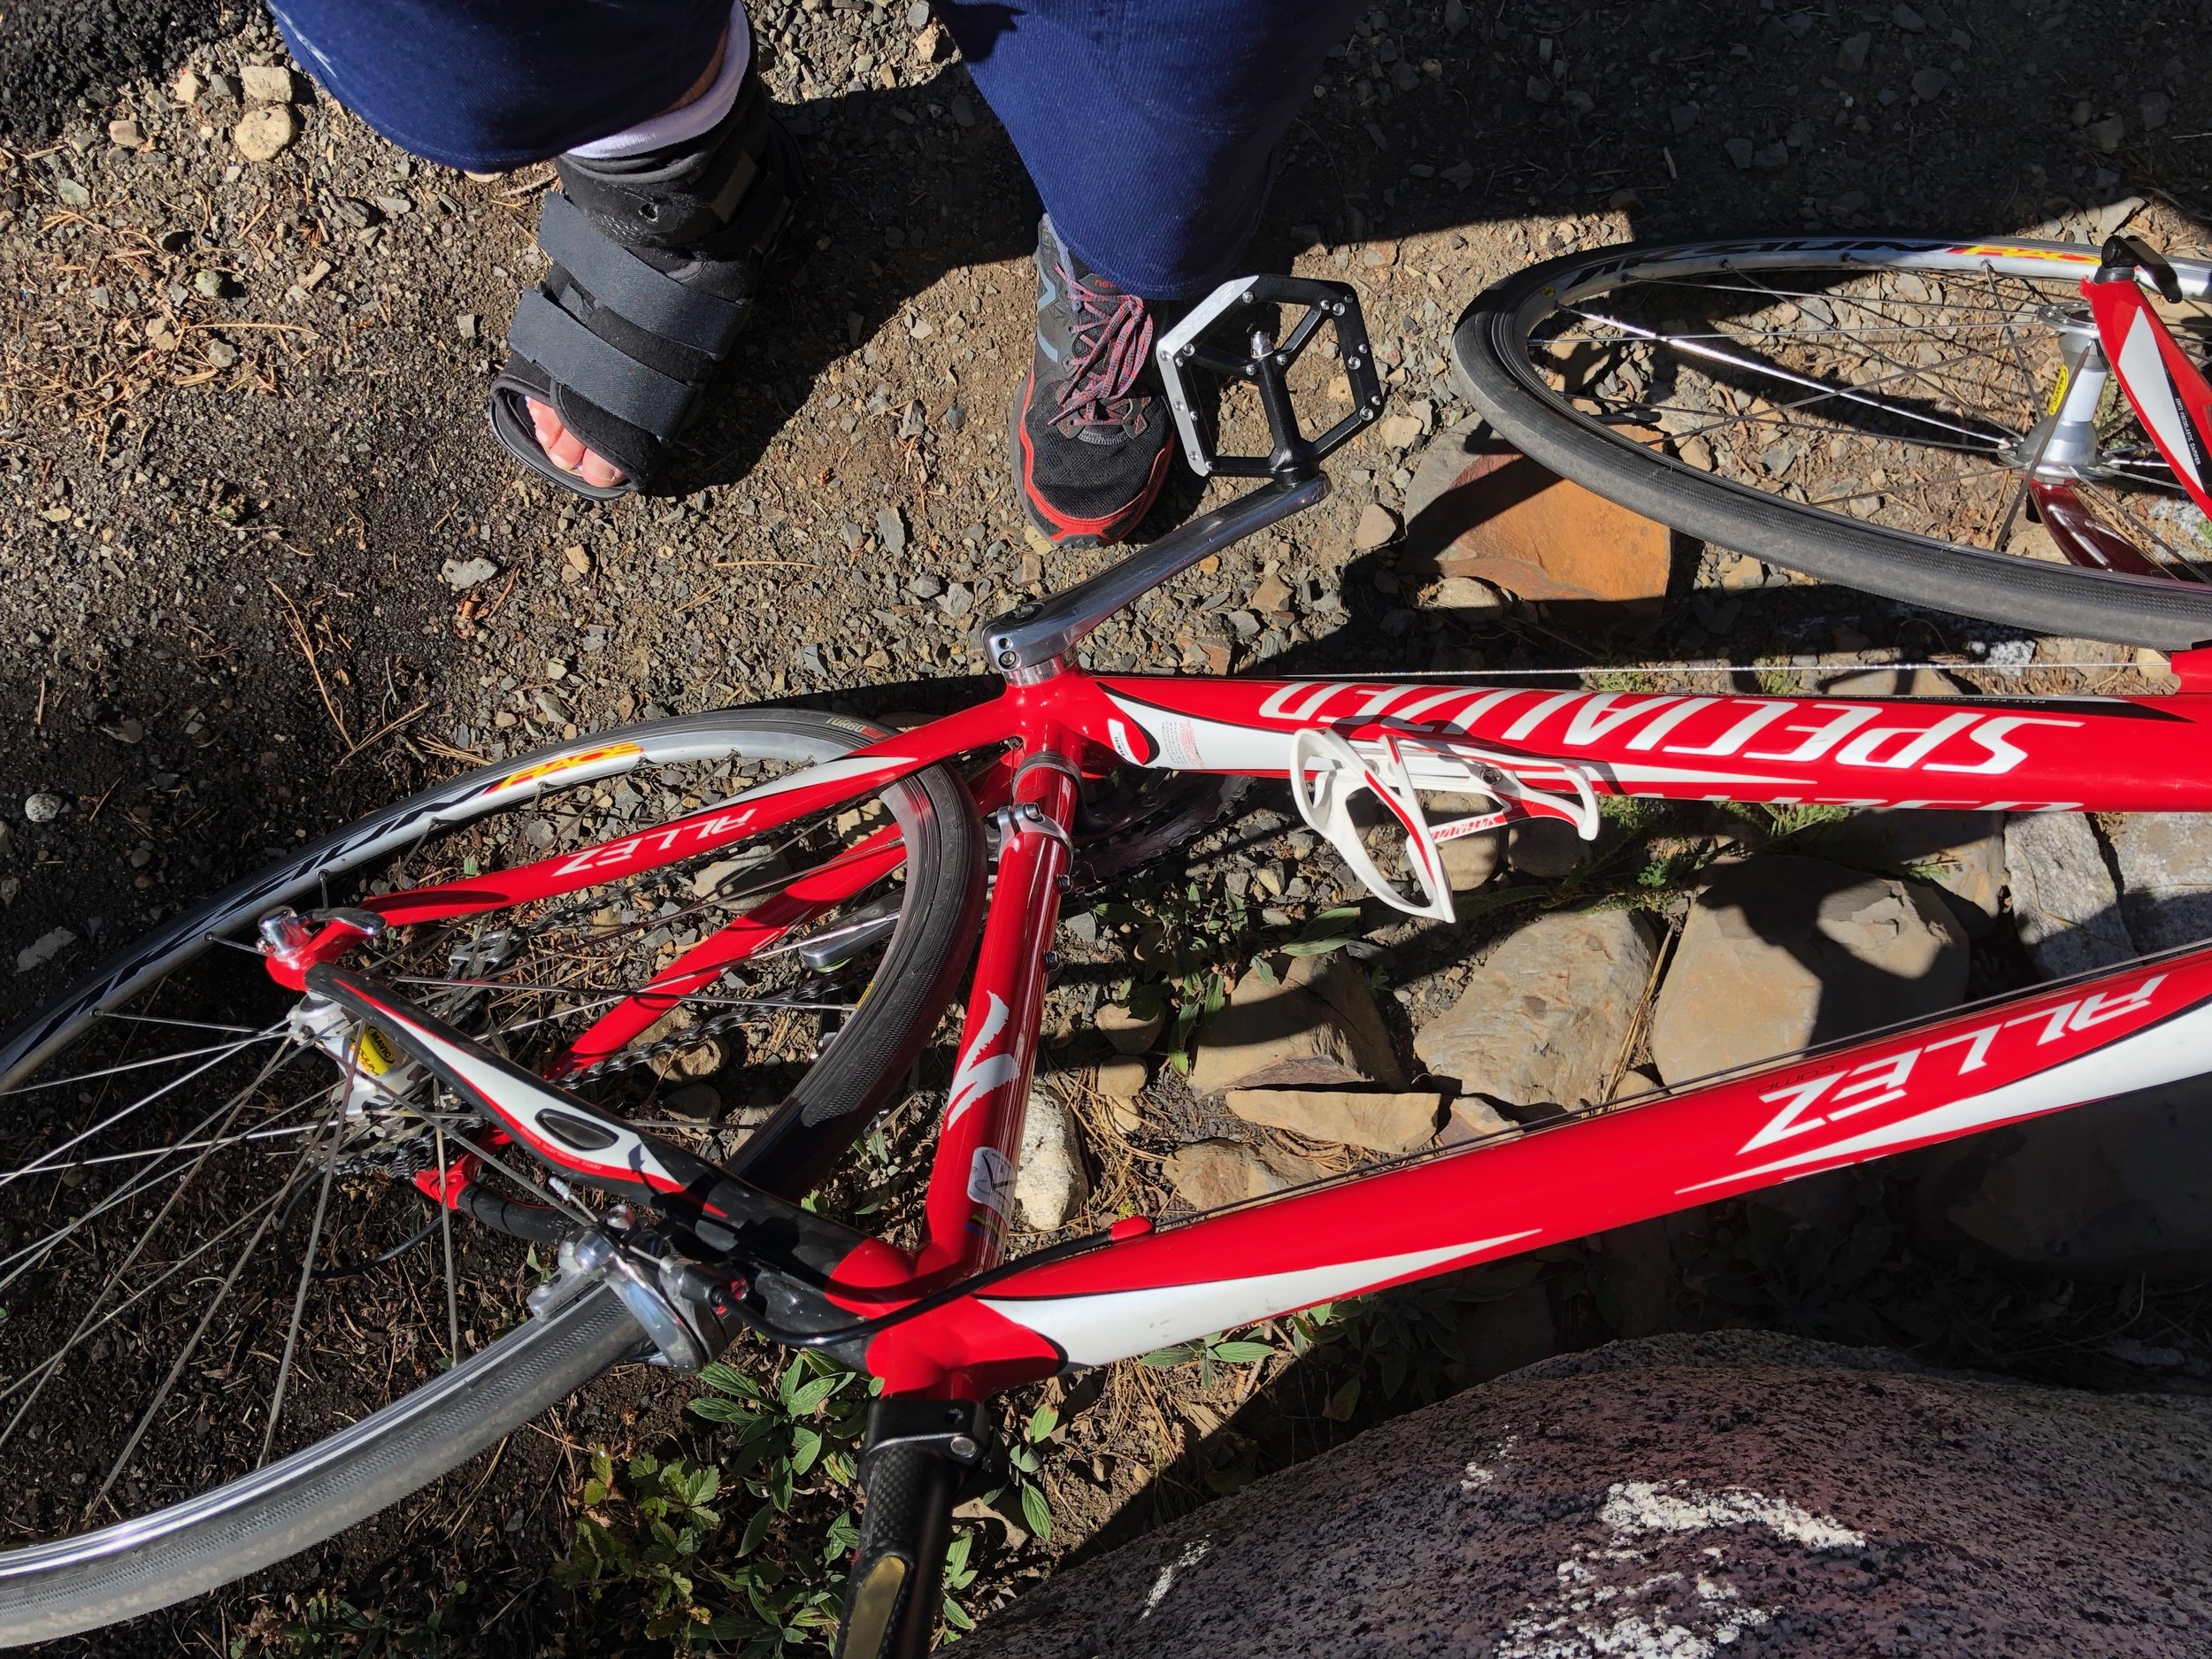 Getting ready for my first ride on a road bike, a 16-mile spin around McCall, Idaho.